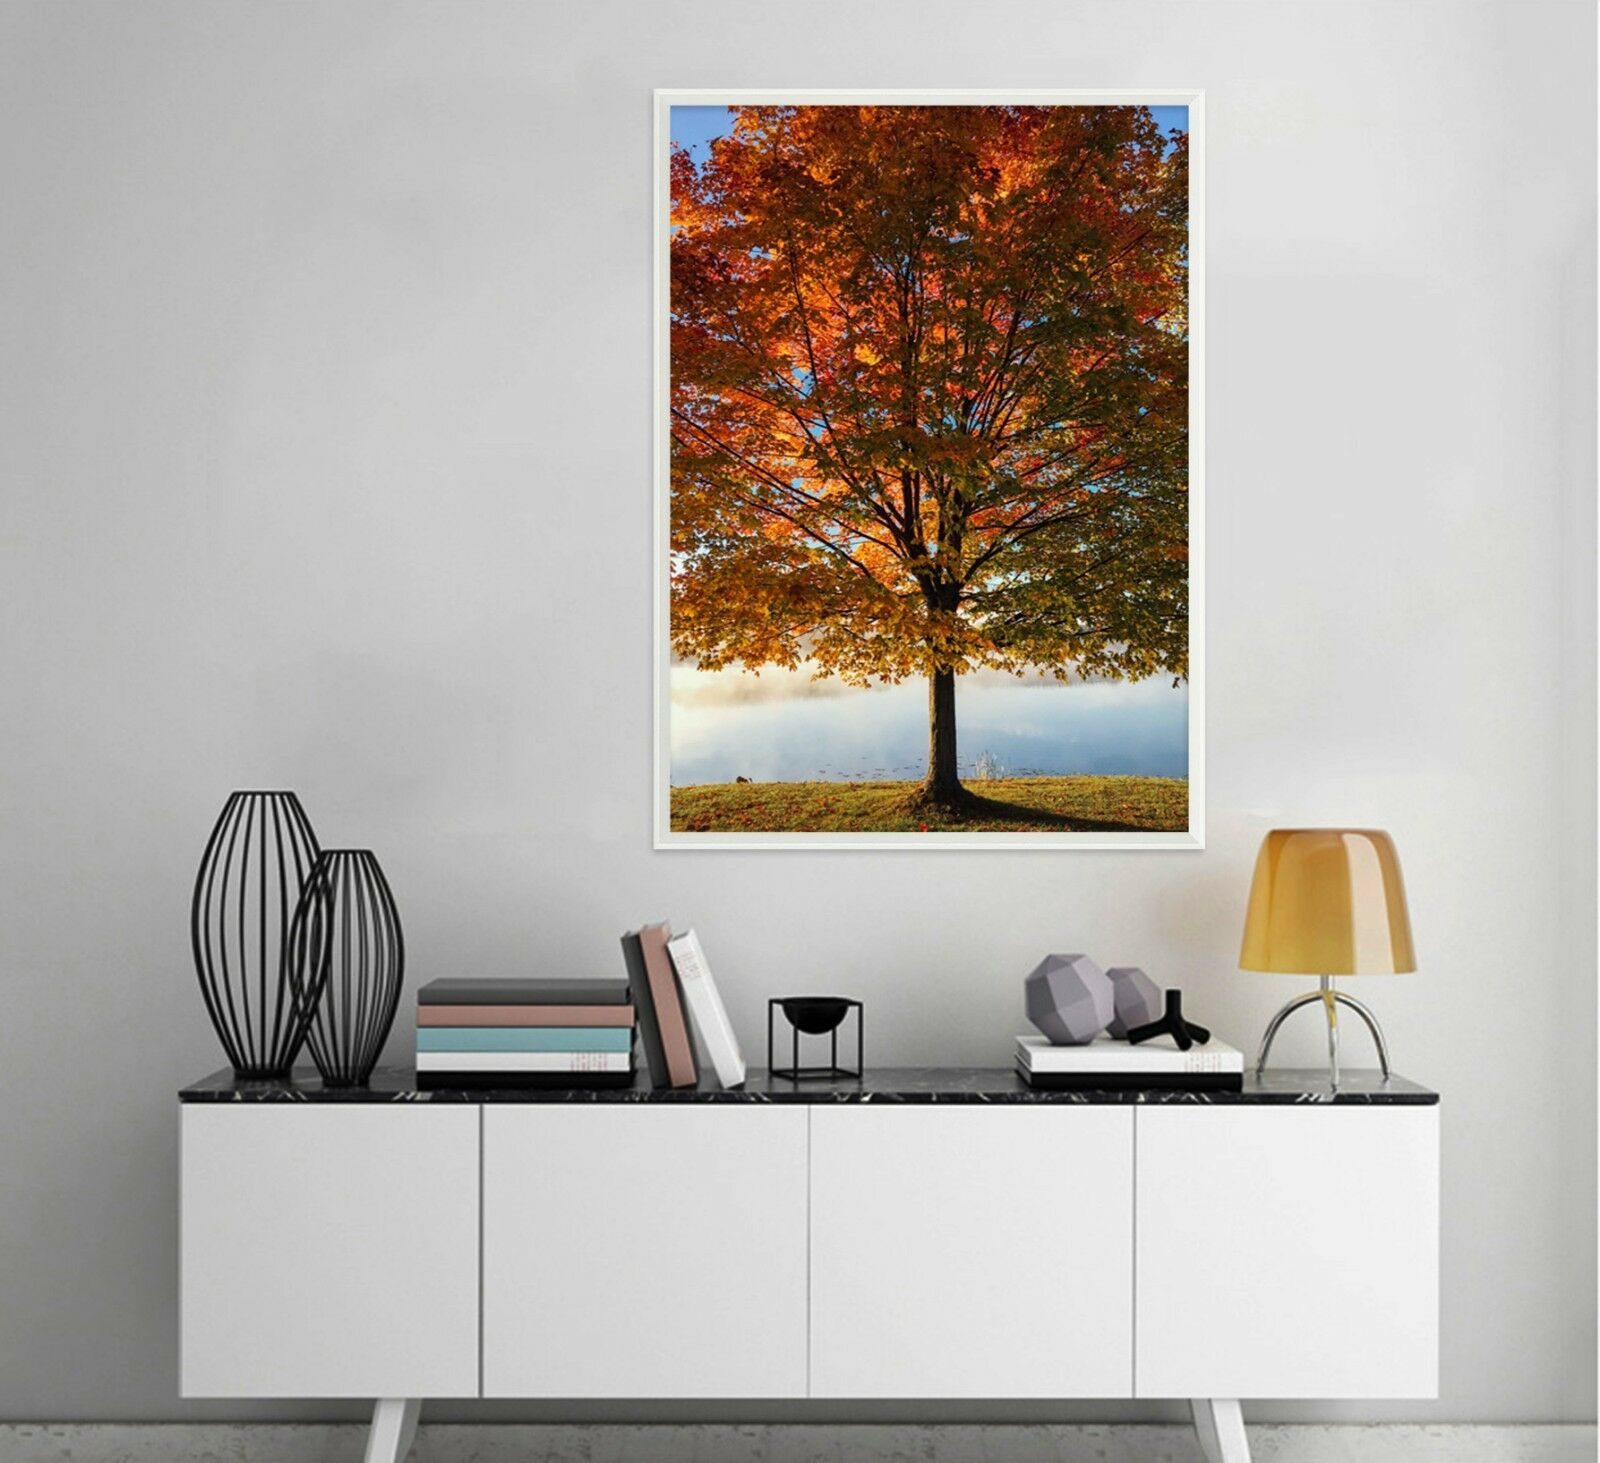 3D Lake Sunset Tree 2 Framed Poster Home Decor Print Painting Art AJ WALLPAPER